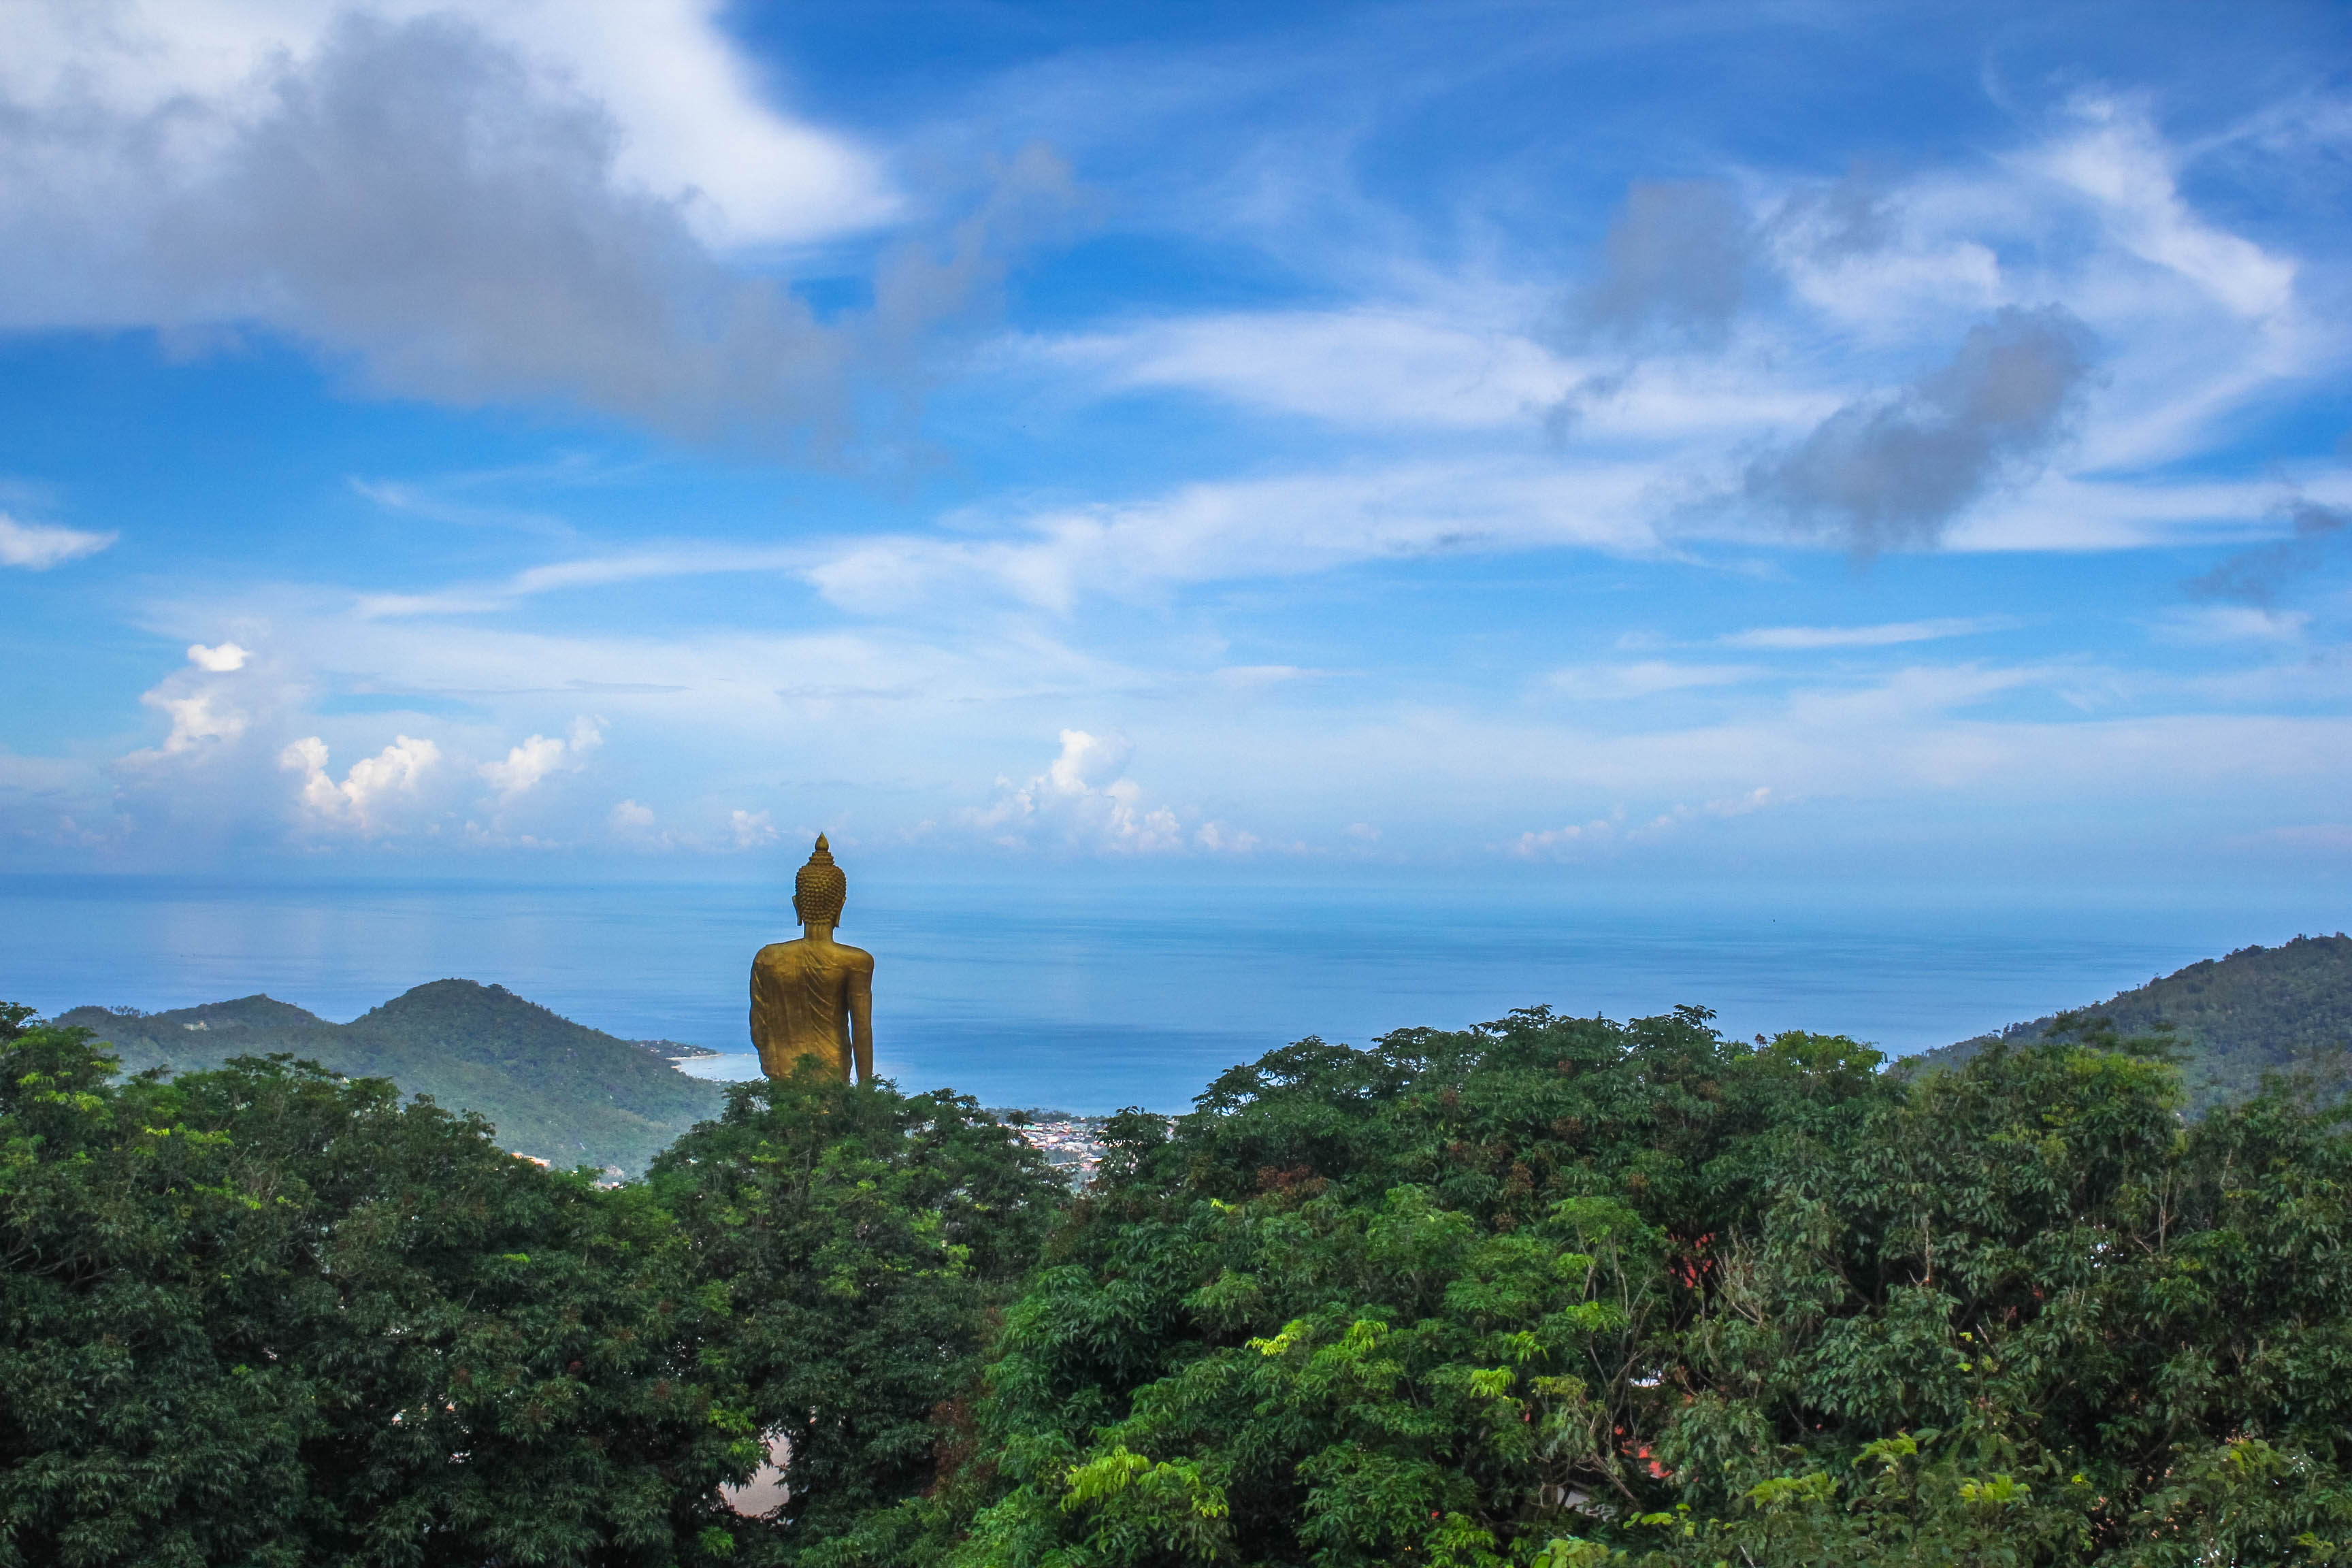 Mountain Big Buddha + Beach – Koh Samui, Thailand